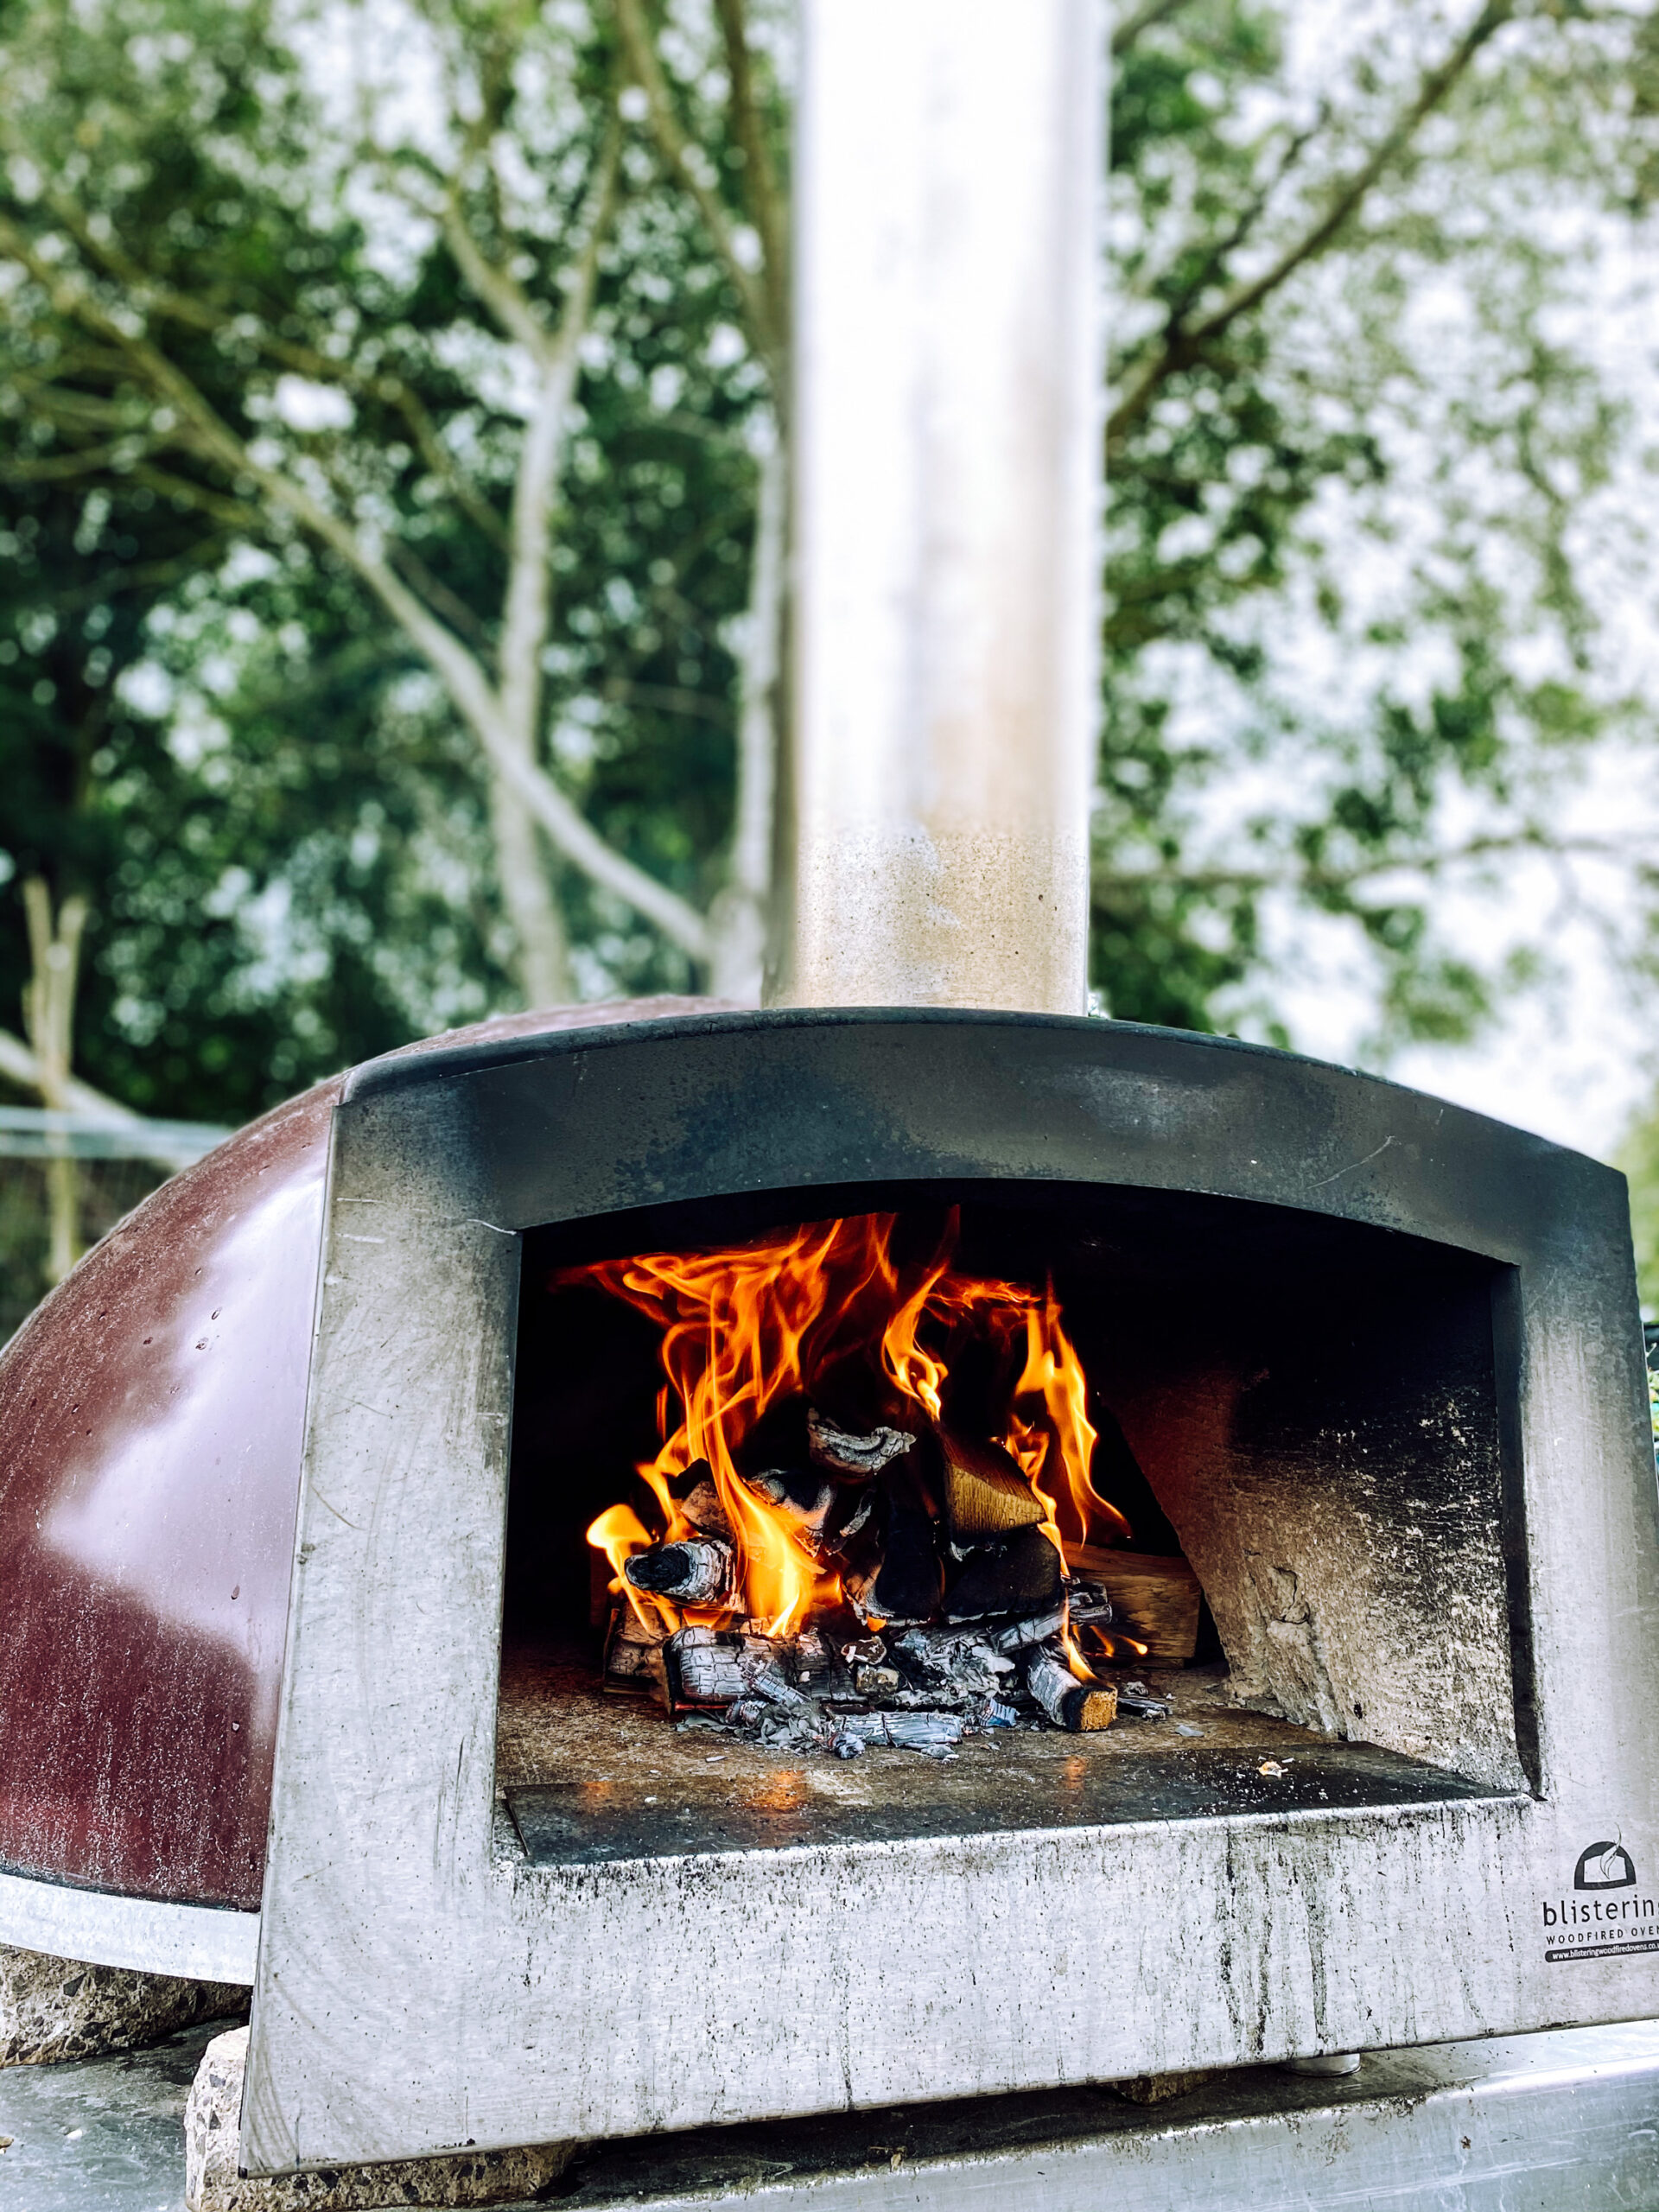 Pizza Oven at Field 725